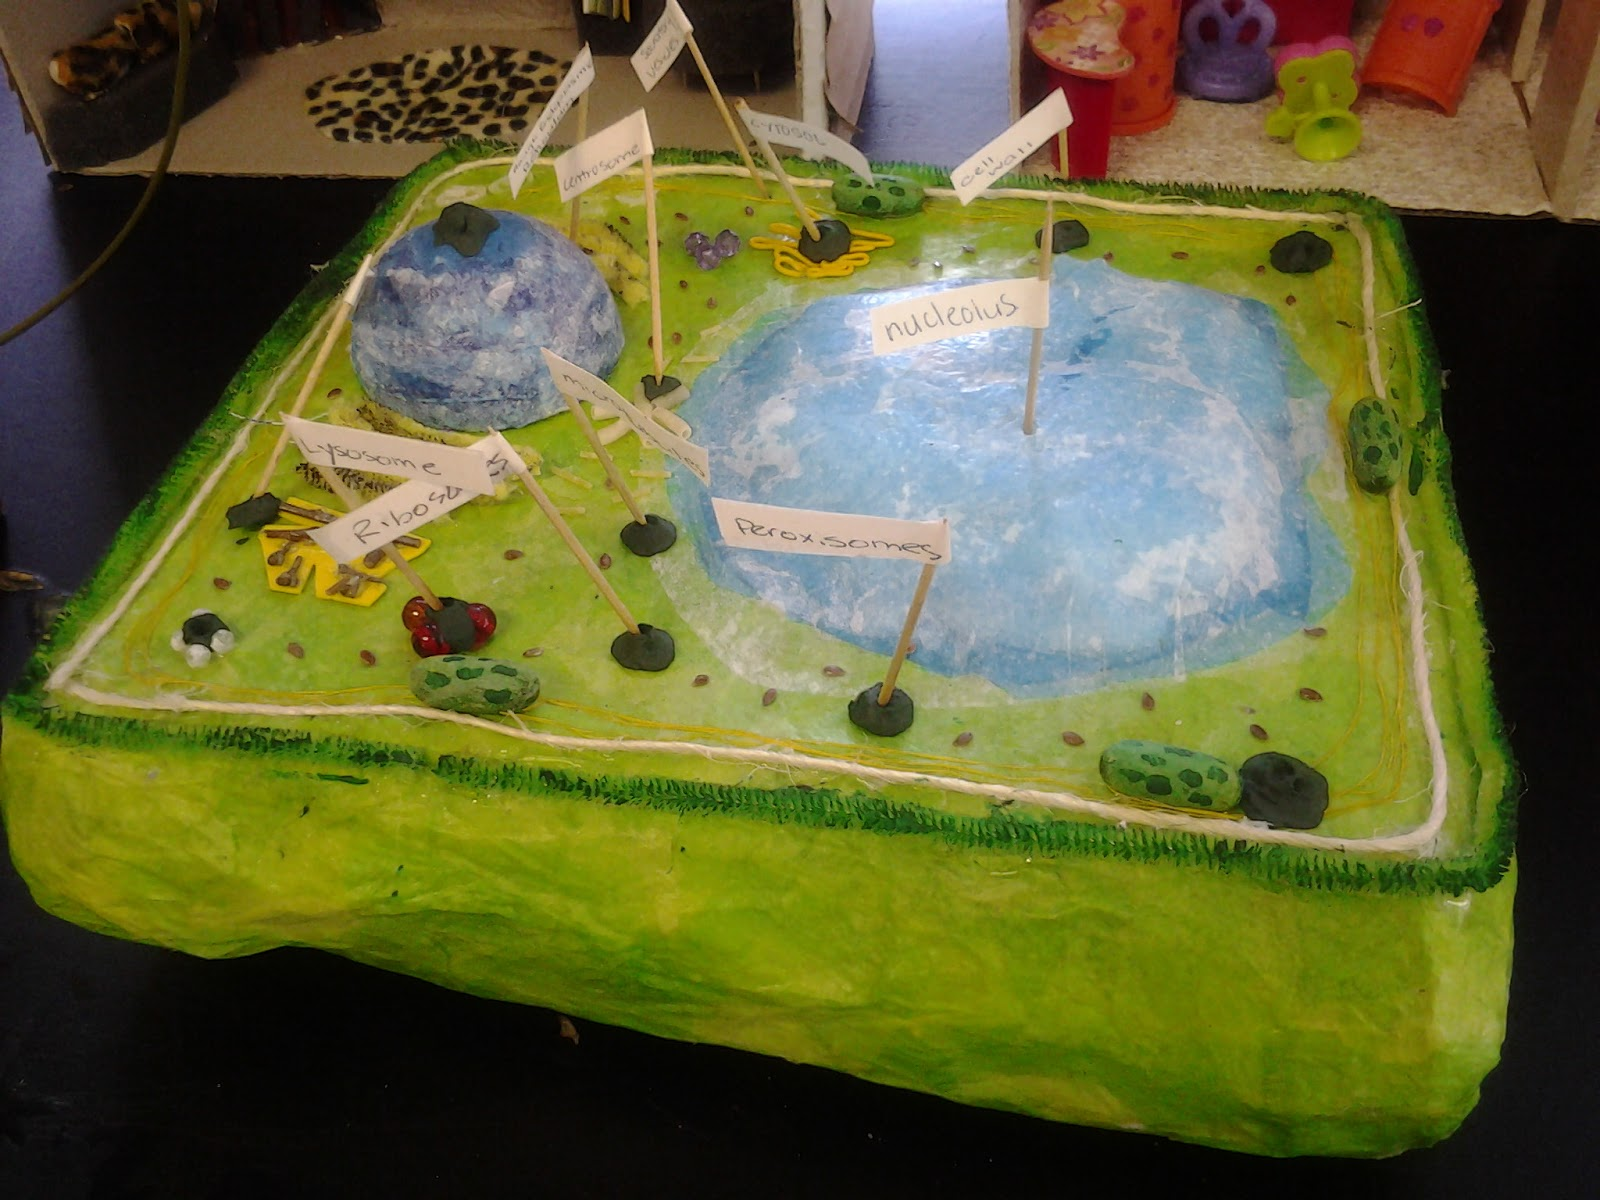 ... Academy (FSA Elementary School) 5th Grade Student Science Projects